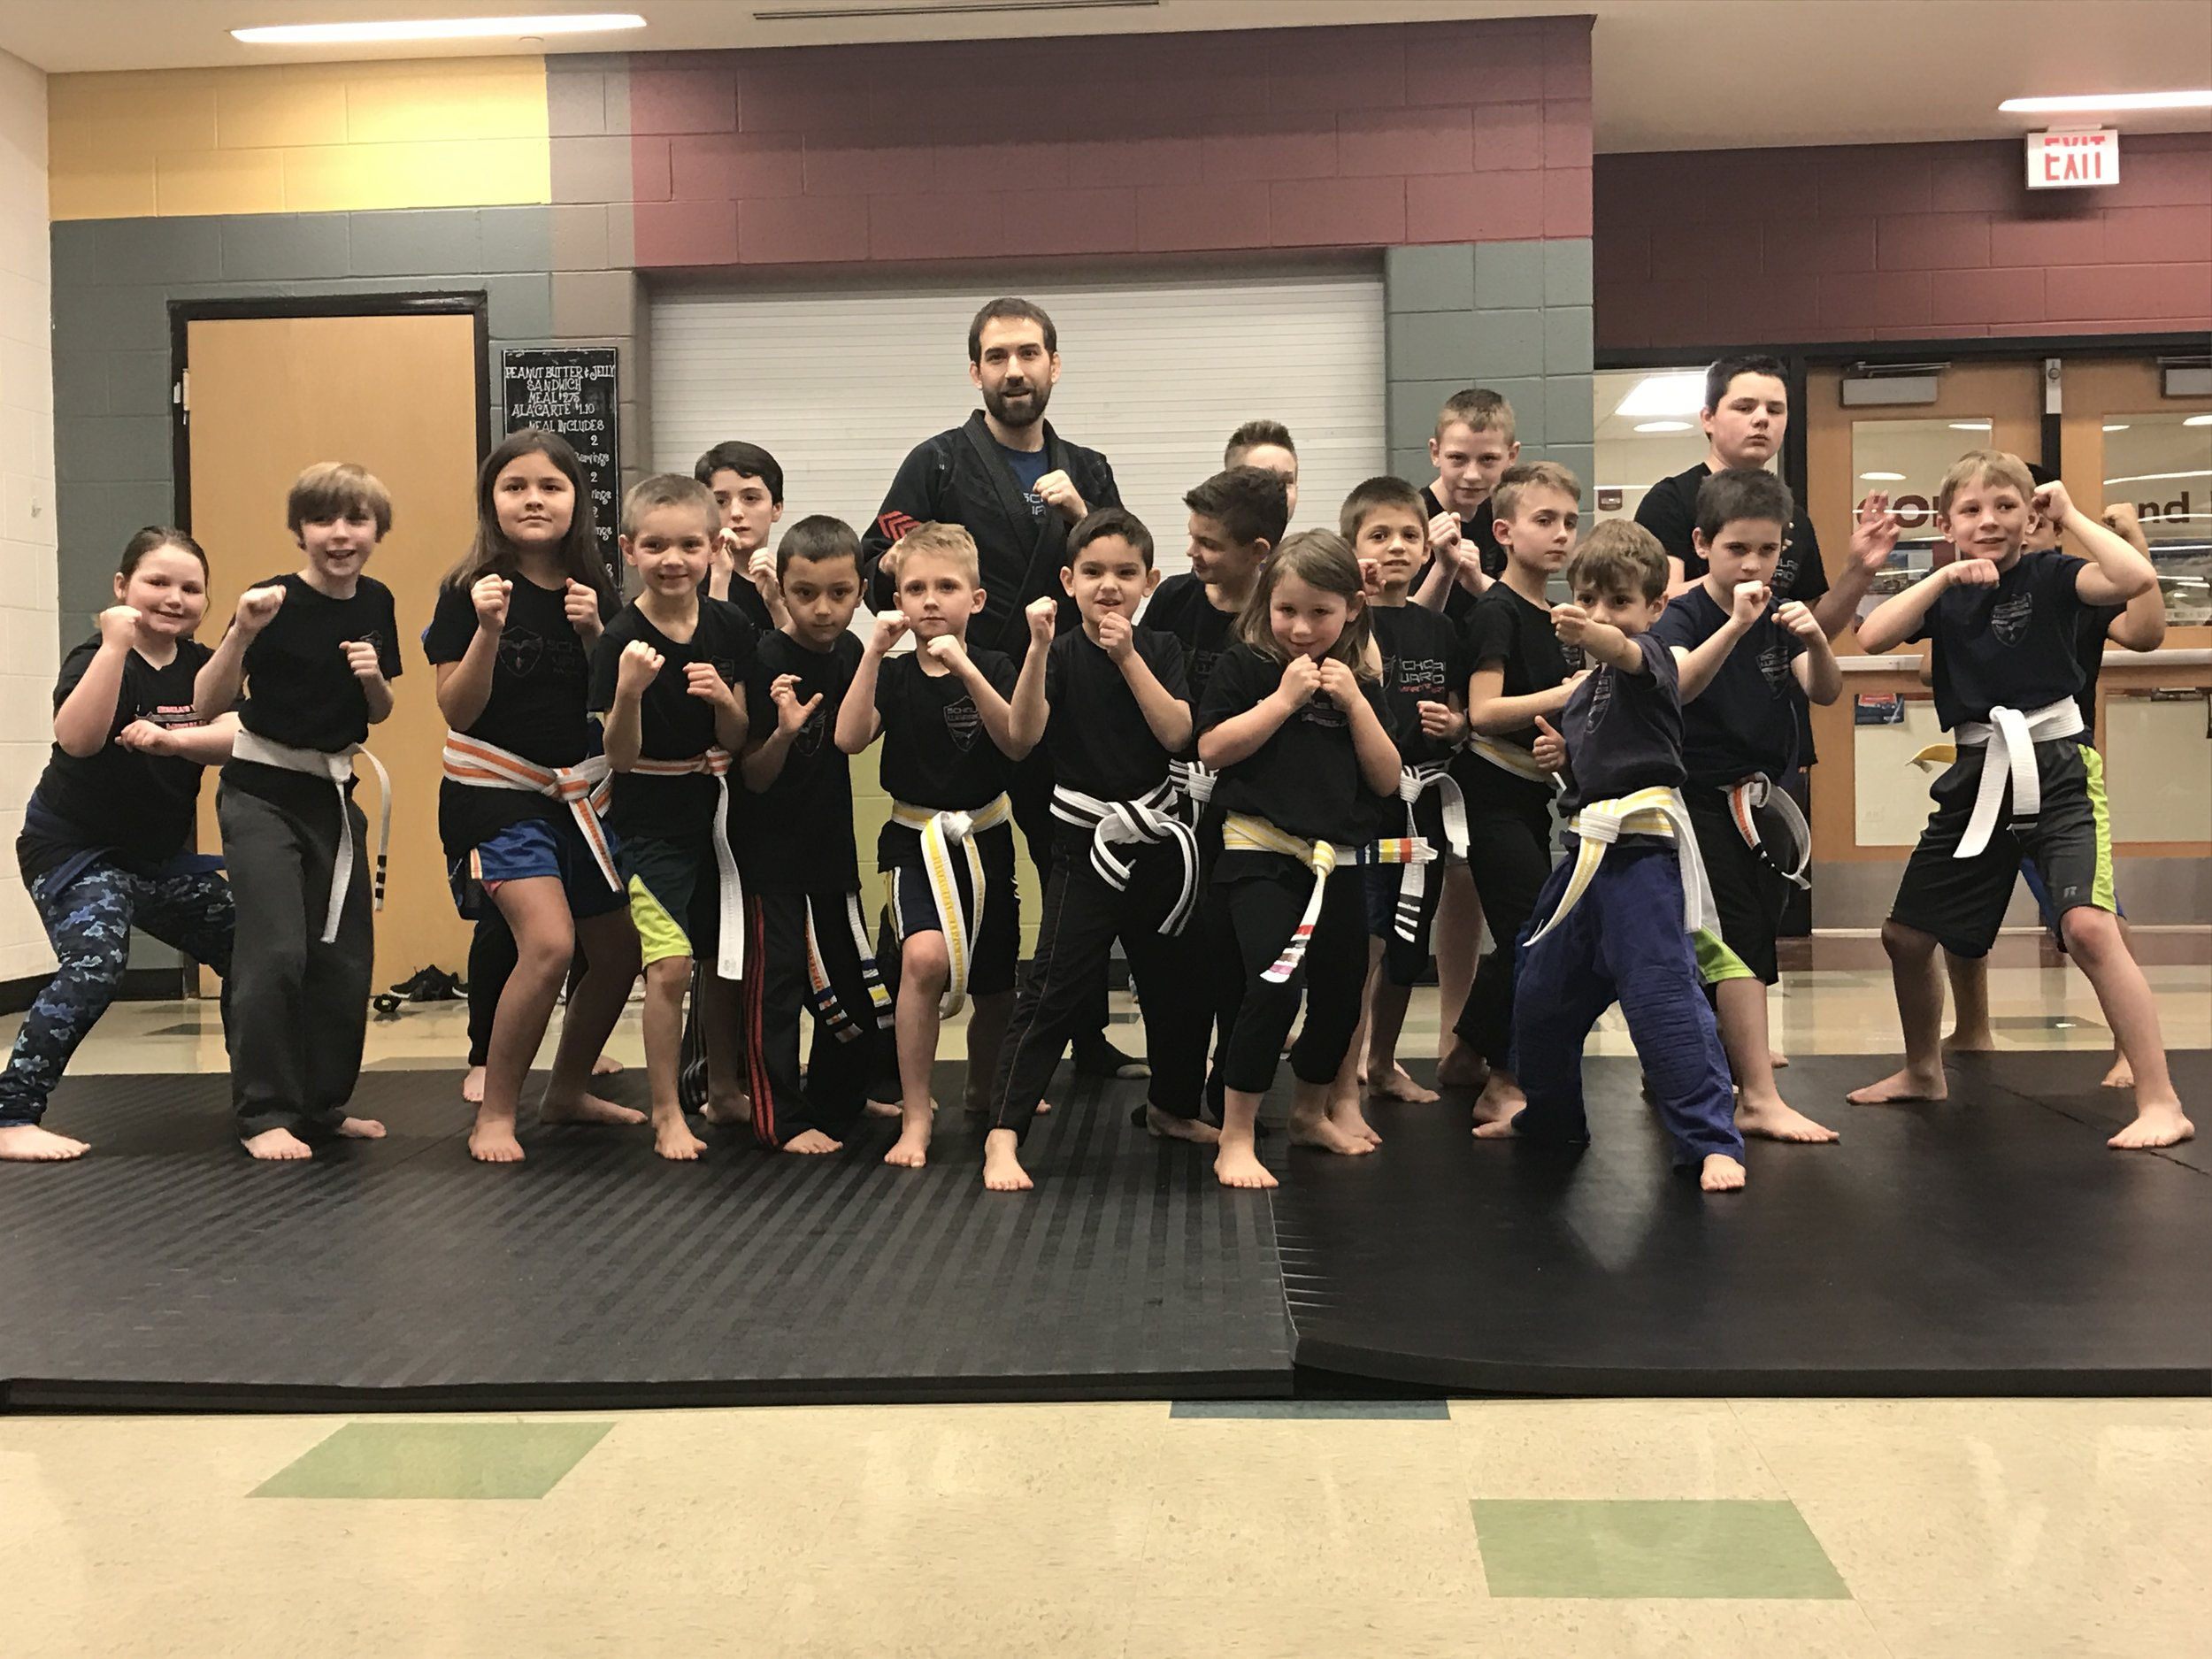 Kids Programs - Classes for kids ages 3 to 13